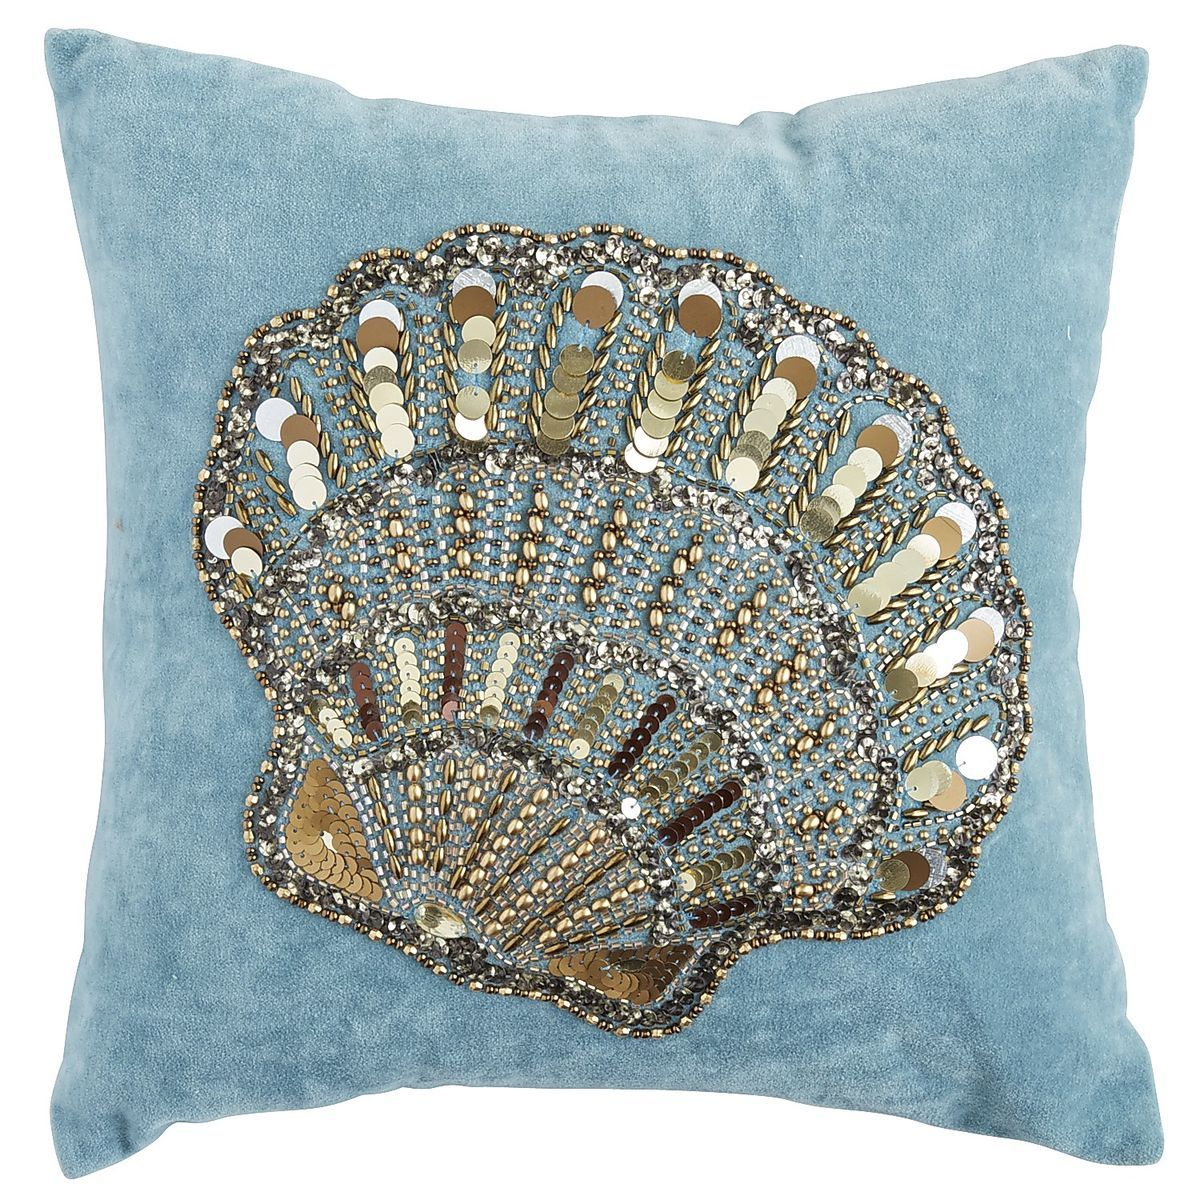 Coastal Beaded Embroidered Shell Pillow | Pier 1 Imports Ideas